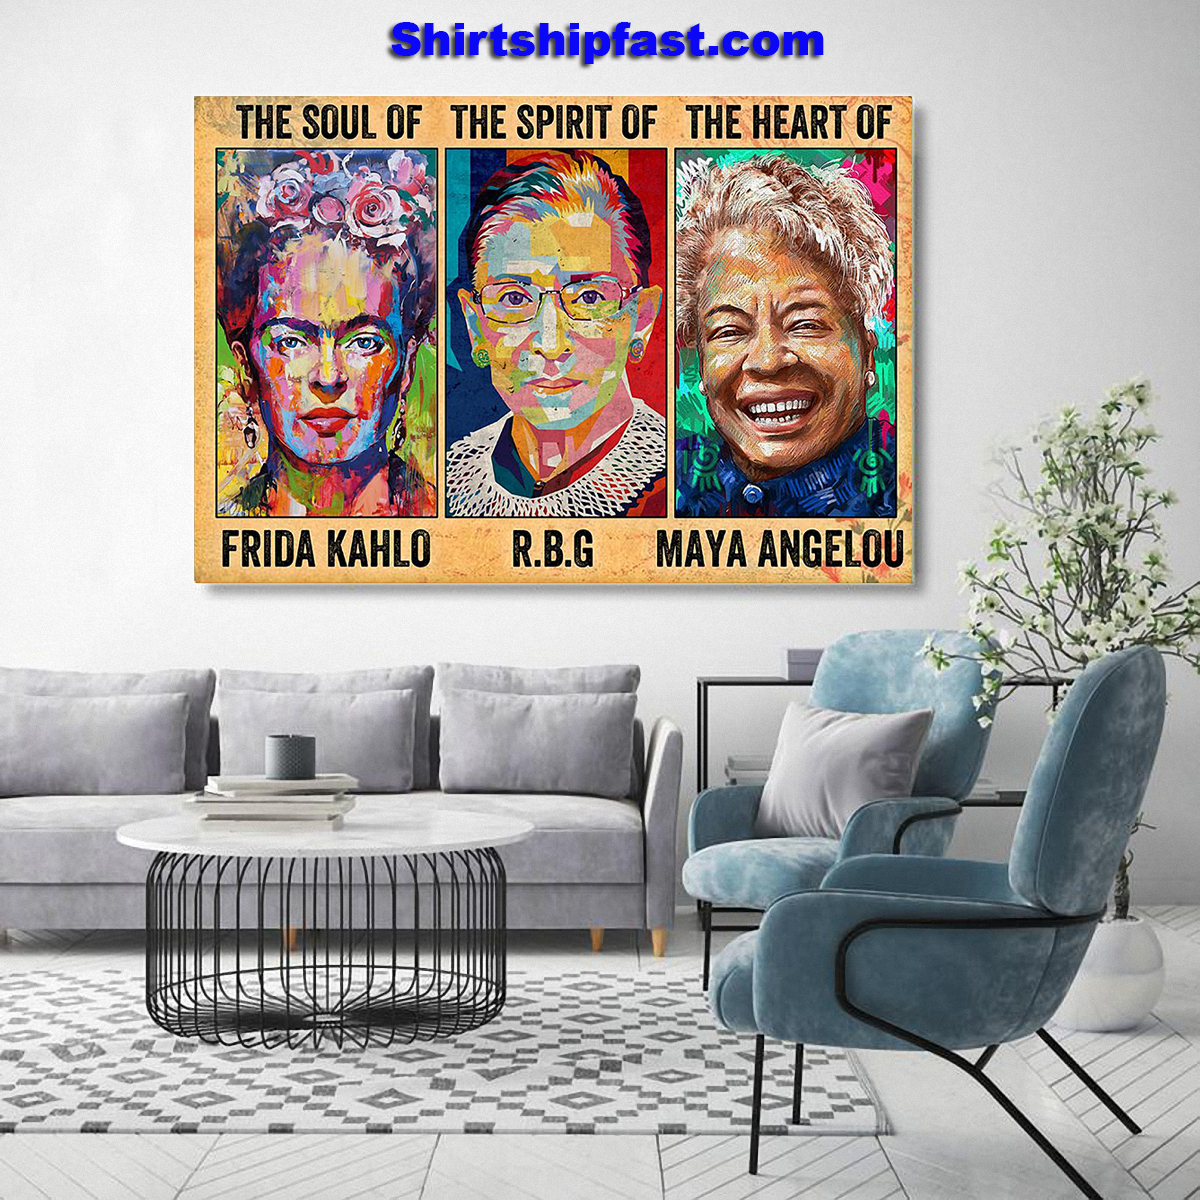 The soul of Frida Kahlo the spirit of RBG the heart of Maya Angelou poster - Picture 3